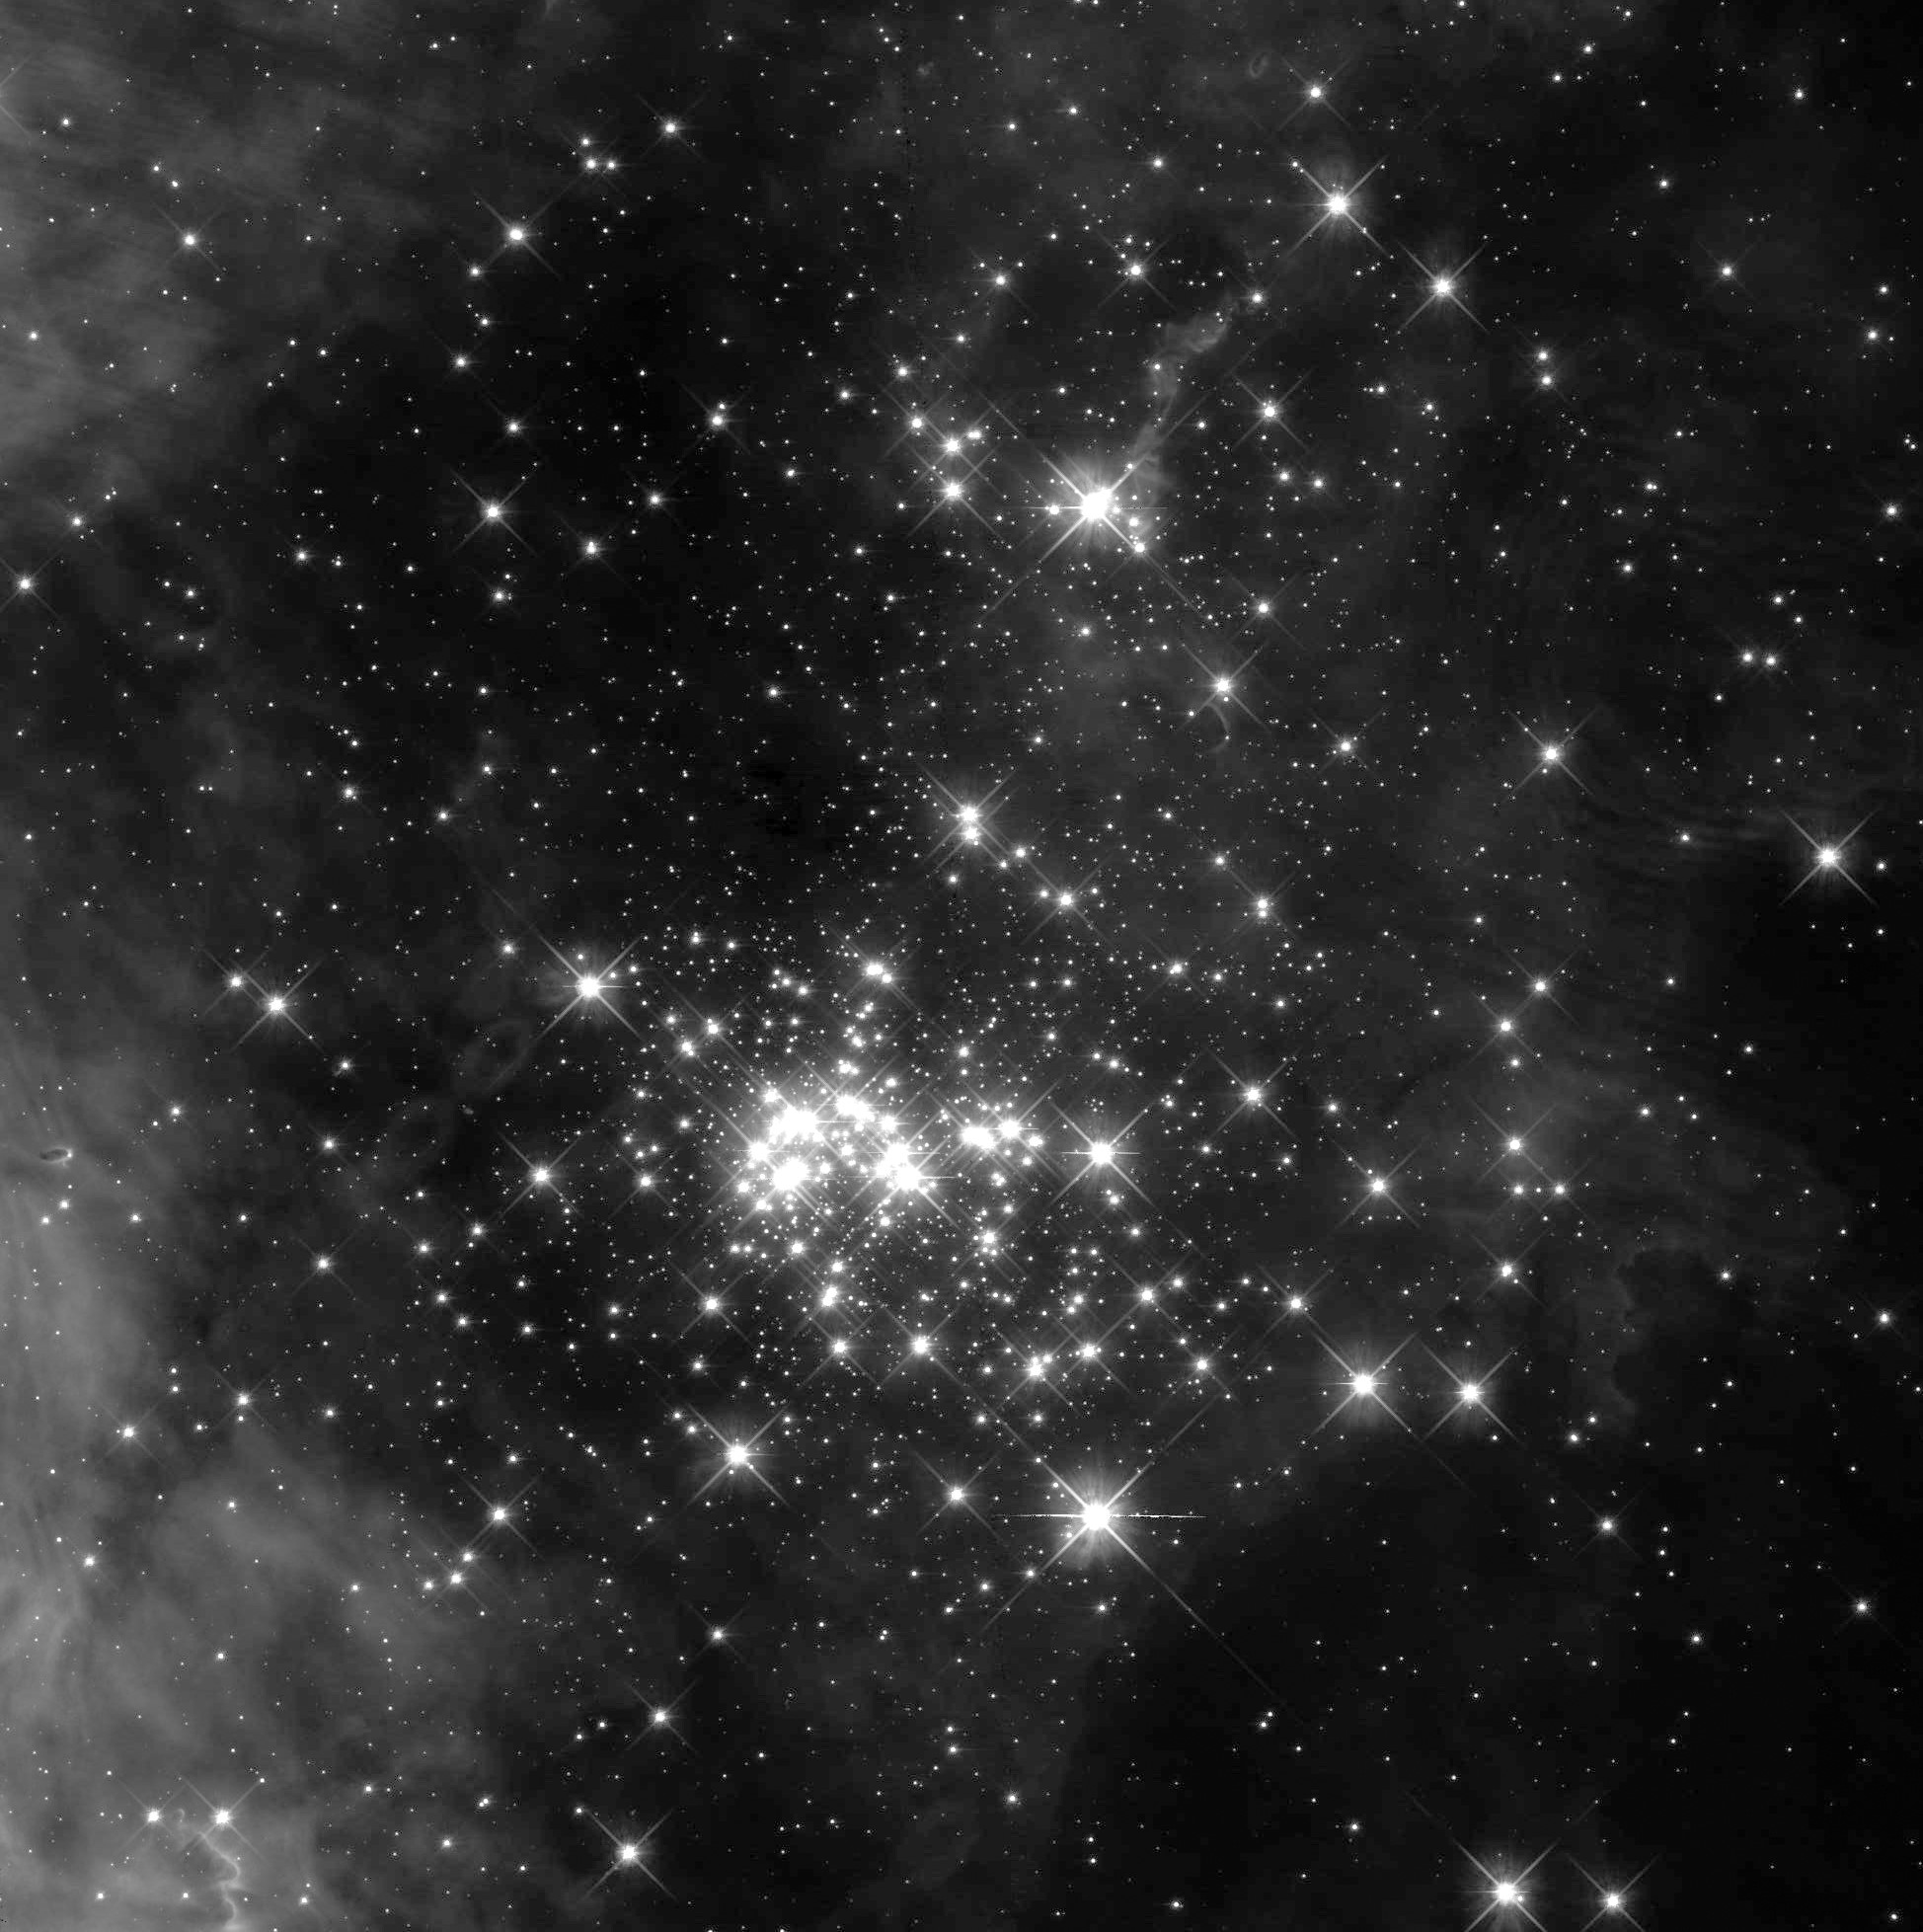 This black-and-white image of the Westerlund 2 star cluster focuses on the central part of the cluster. The image was taken by Hubble in the 800-nanometer wavelength range, in the near-infrared part of the electromagnetic spectrum just outside the range of visible light. This image was taken as part of astronomer Elena Sabbi's preparatory science project, one goal of which is to use Hubble to identify objects of interest for NASA's James Webb Space Telescope. - Image Credits: NASA, ESA, and E. Sabbi (ESA/STScI)